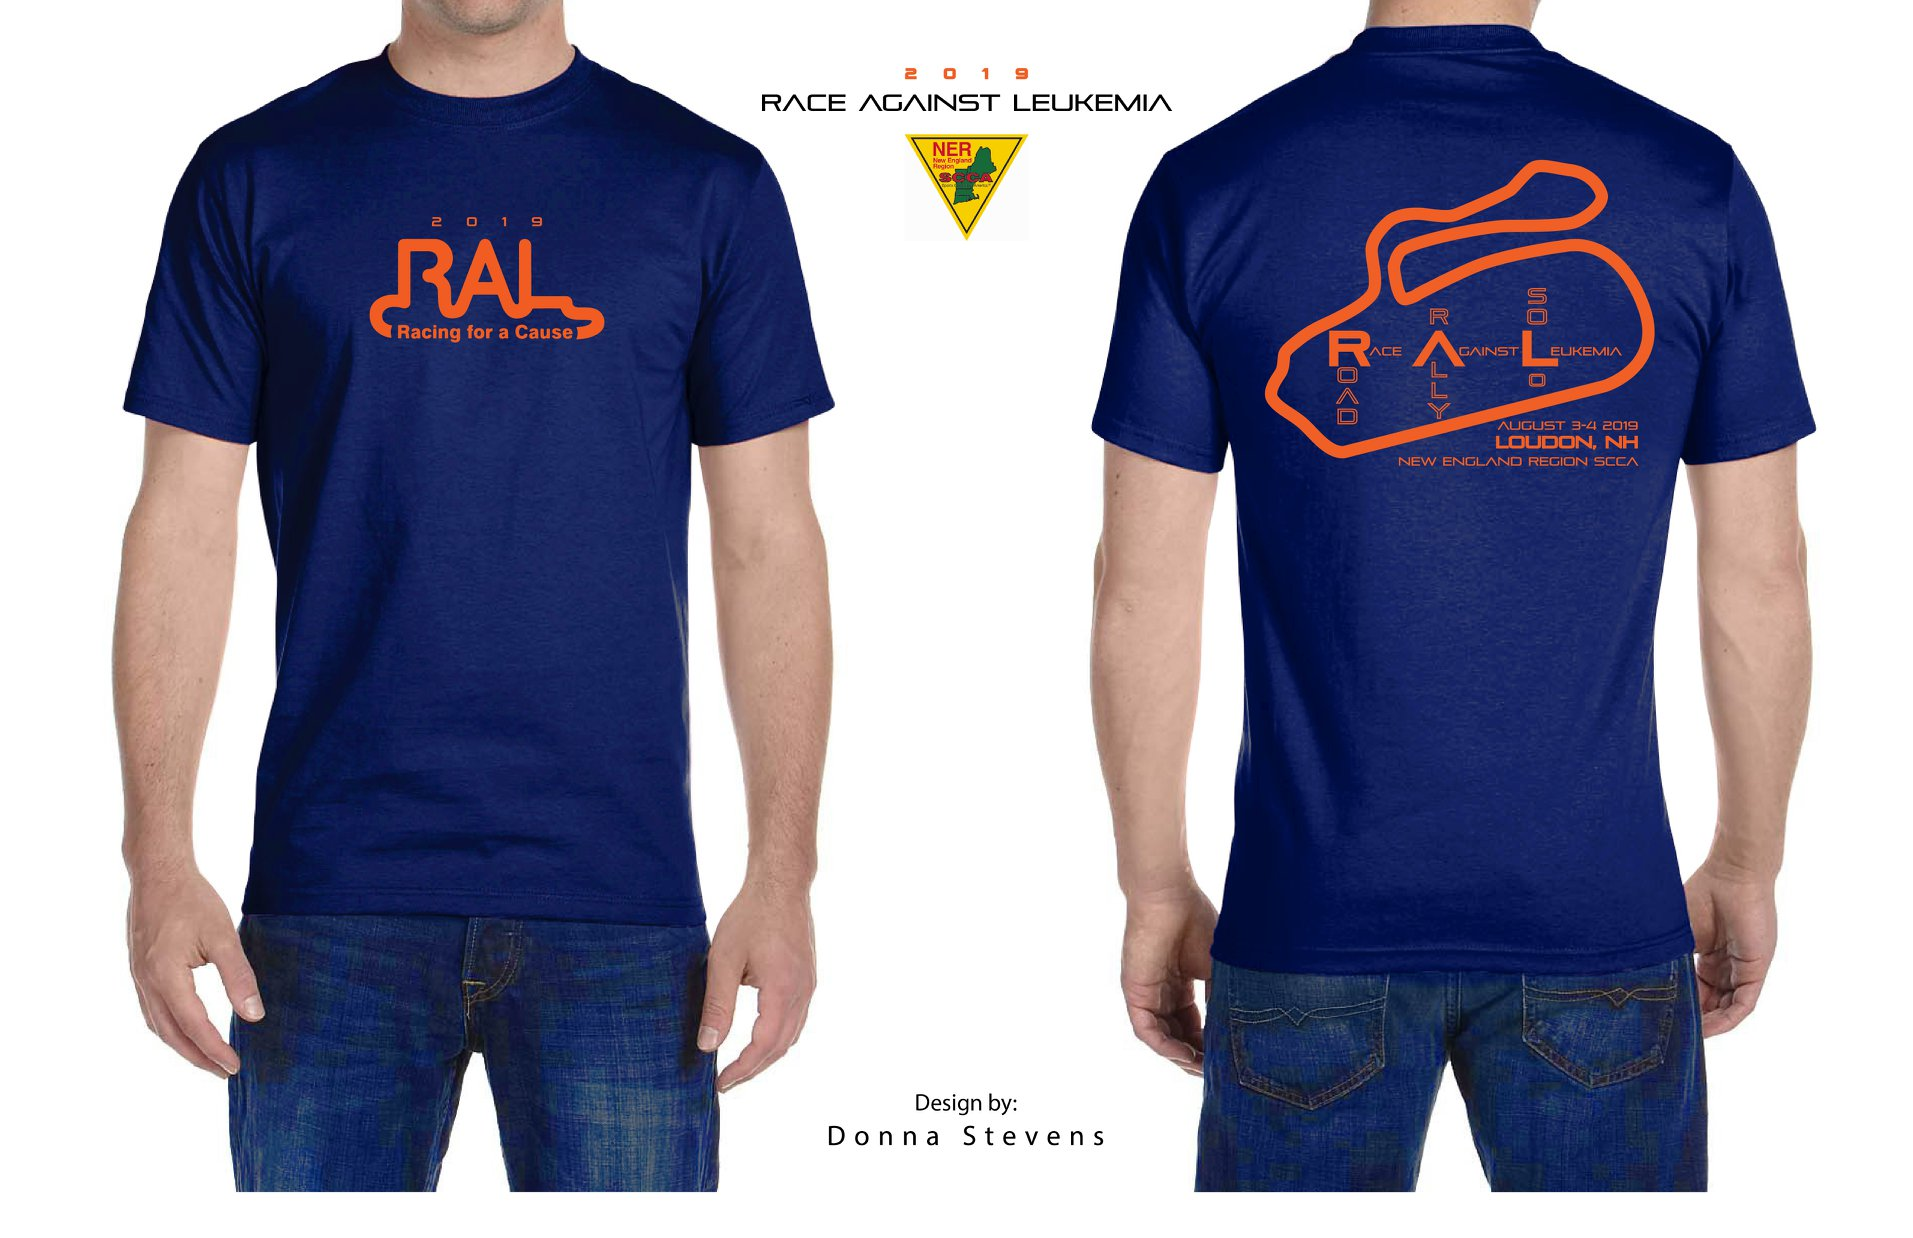 RAL 2019 T-Shirt Design Announced